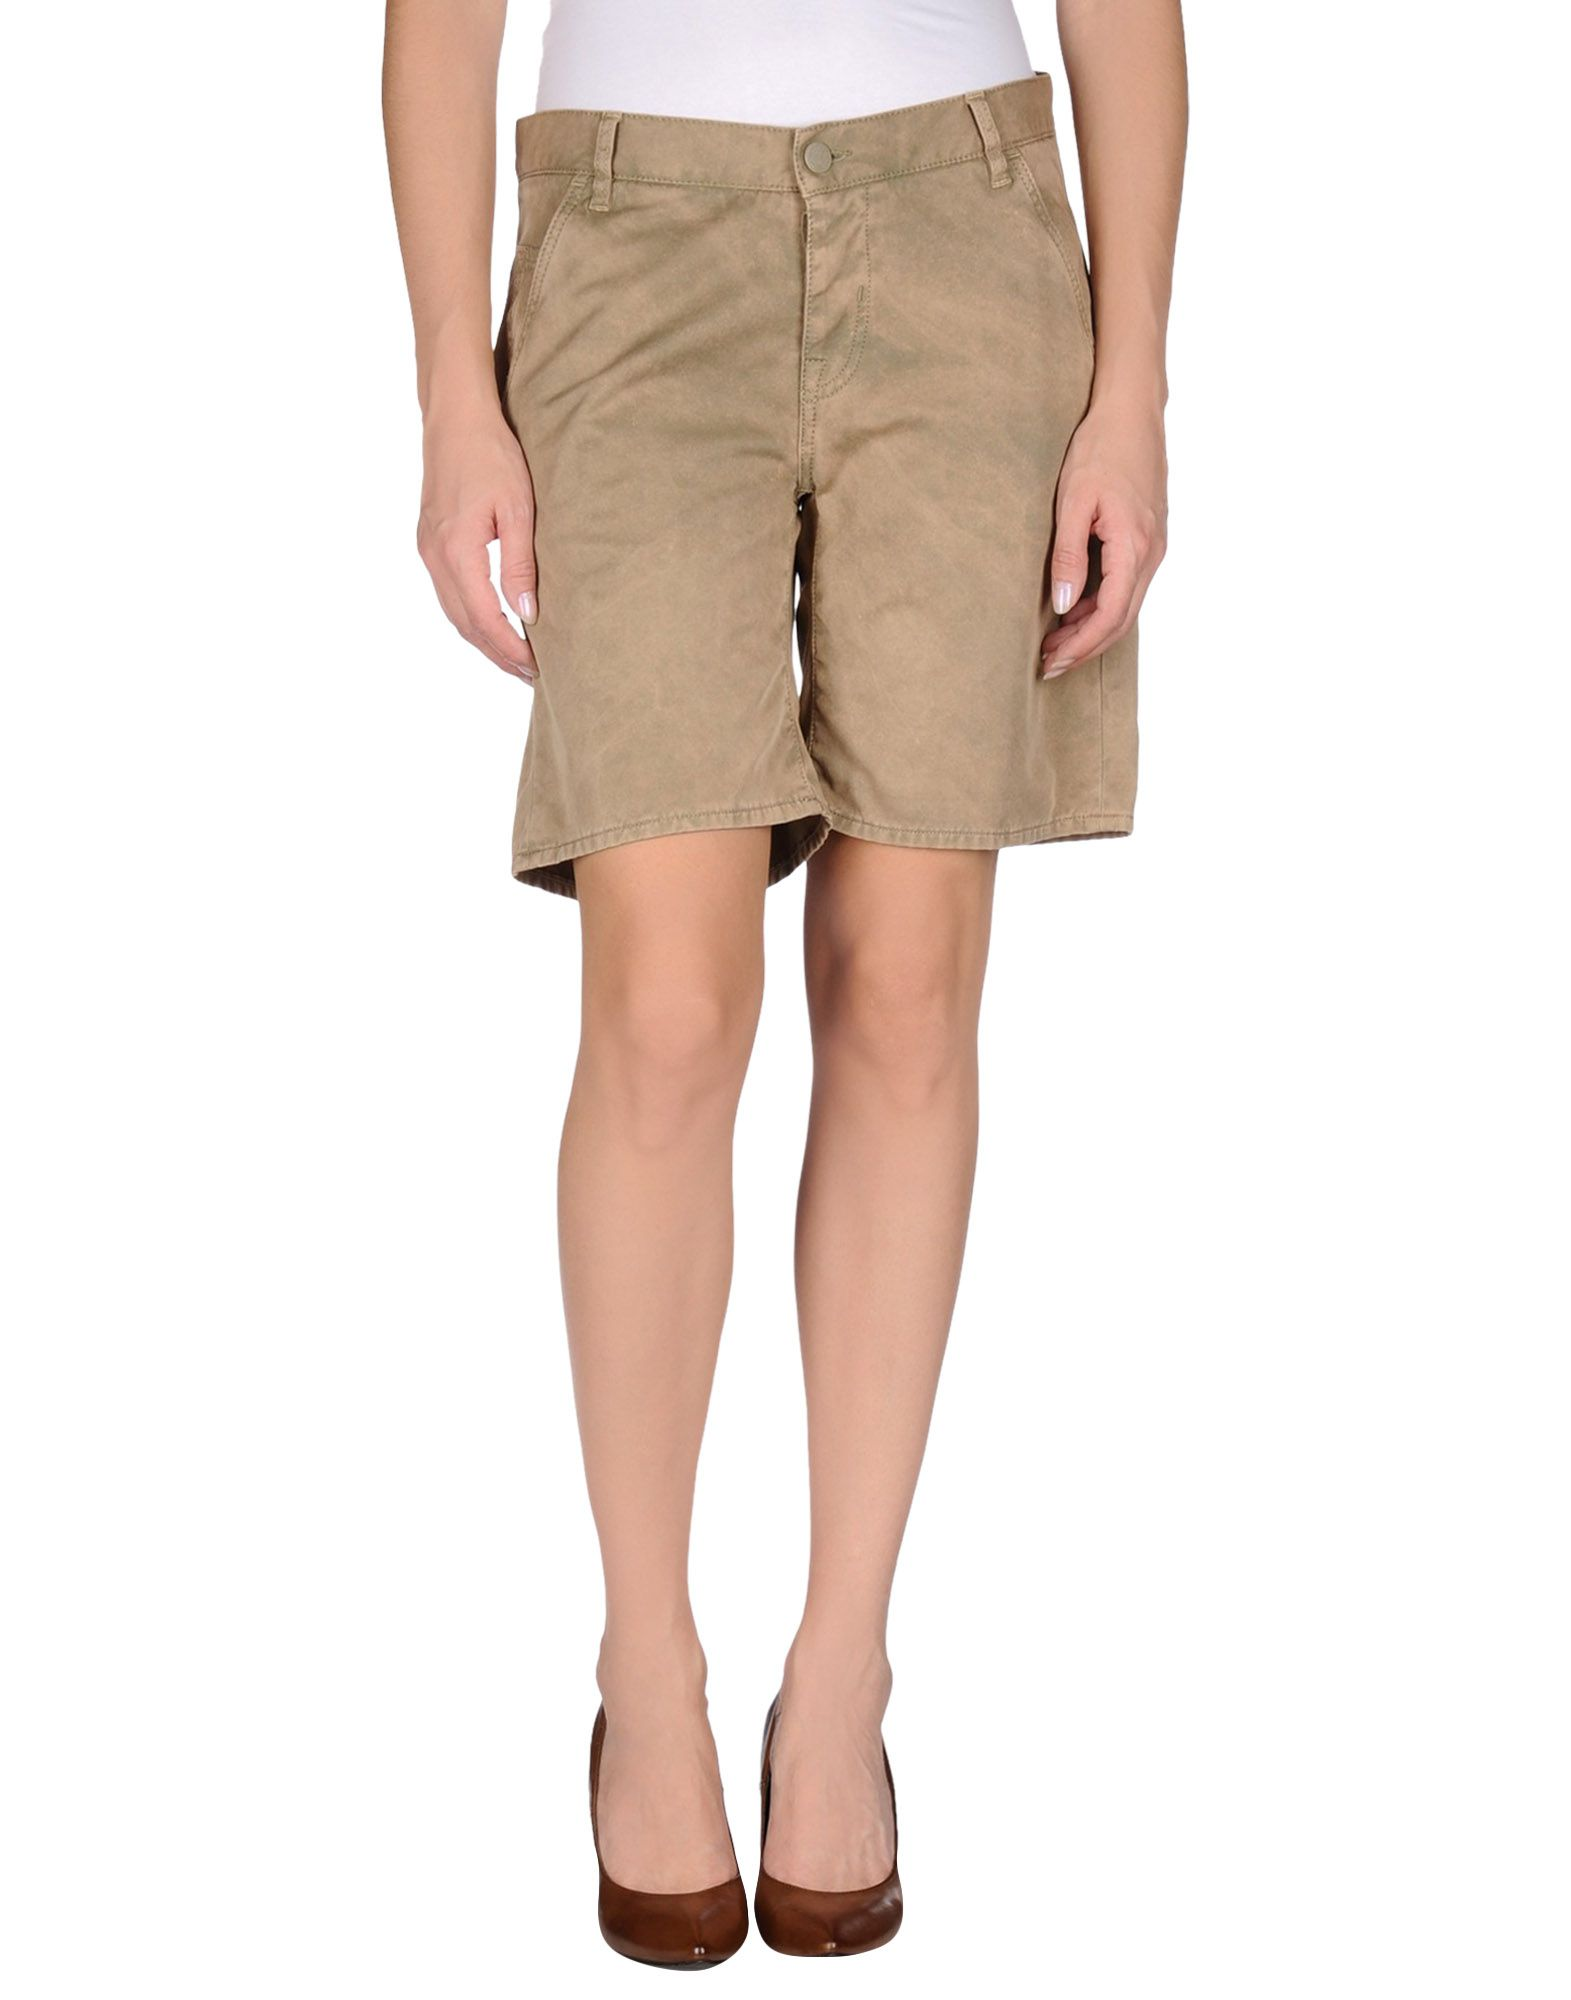 Bermuda shorts in khaki, navy, or twill lengthen your thighs and cover some skin while still showing off your beautiful calves and ankles. You can wear a pair of Bermuda shorts with a dressy top and your favorite sandals for a casual night out with your friends.